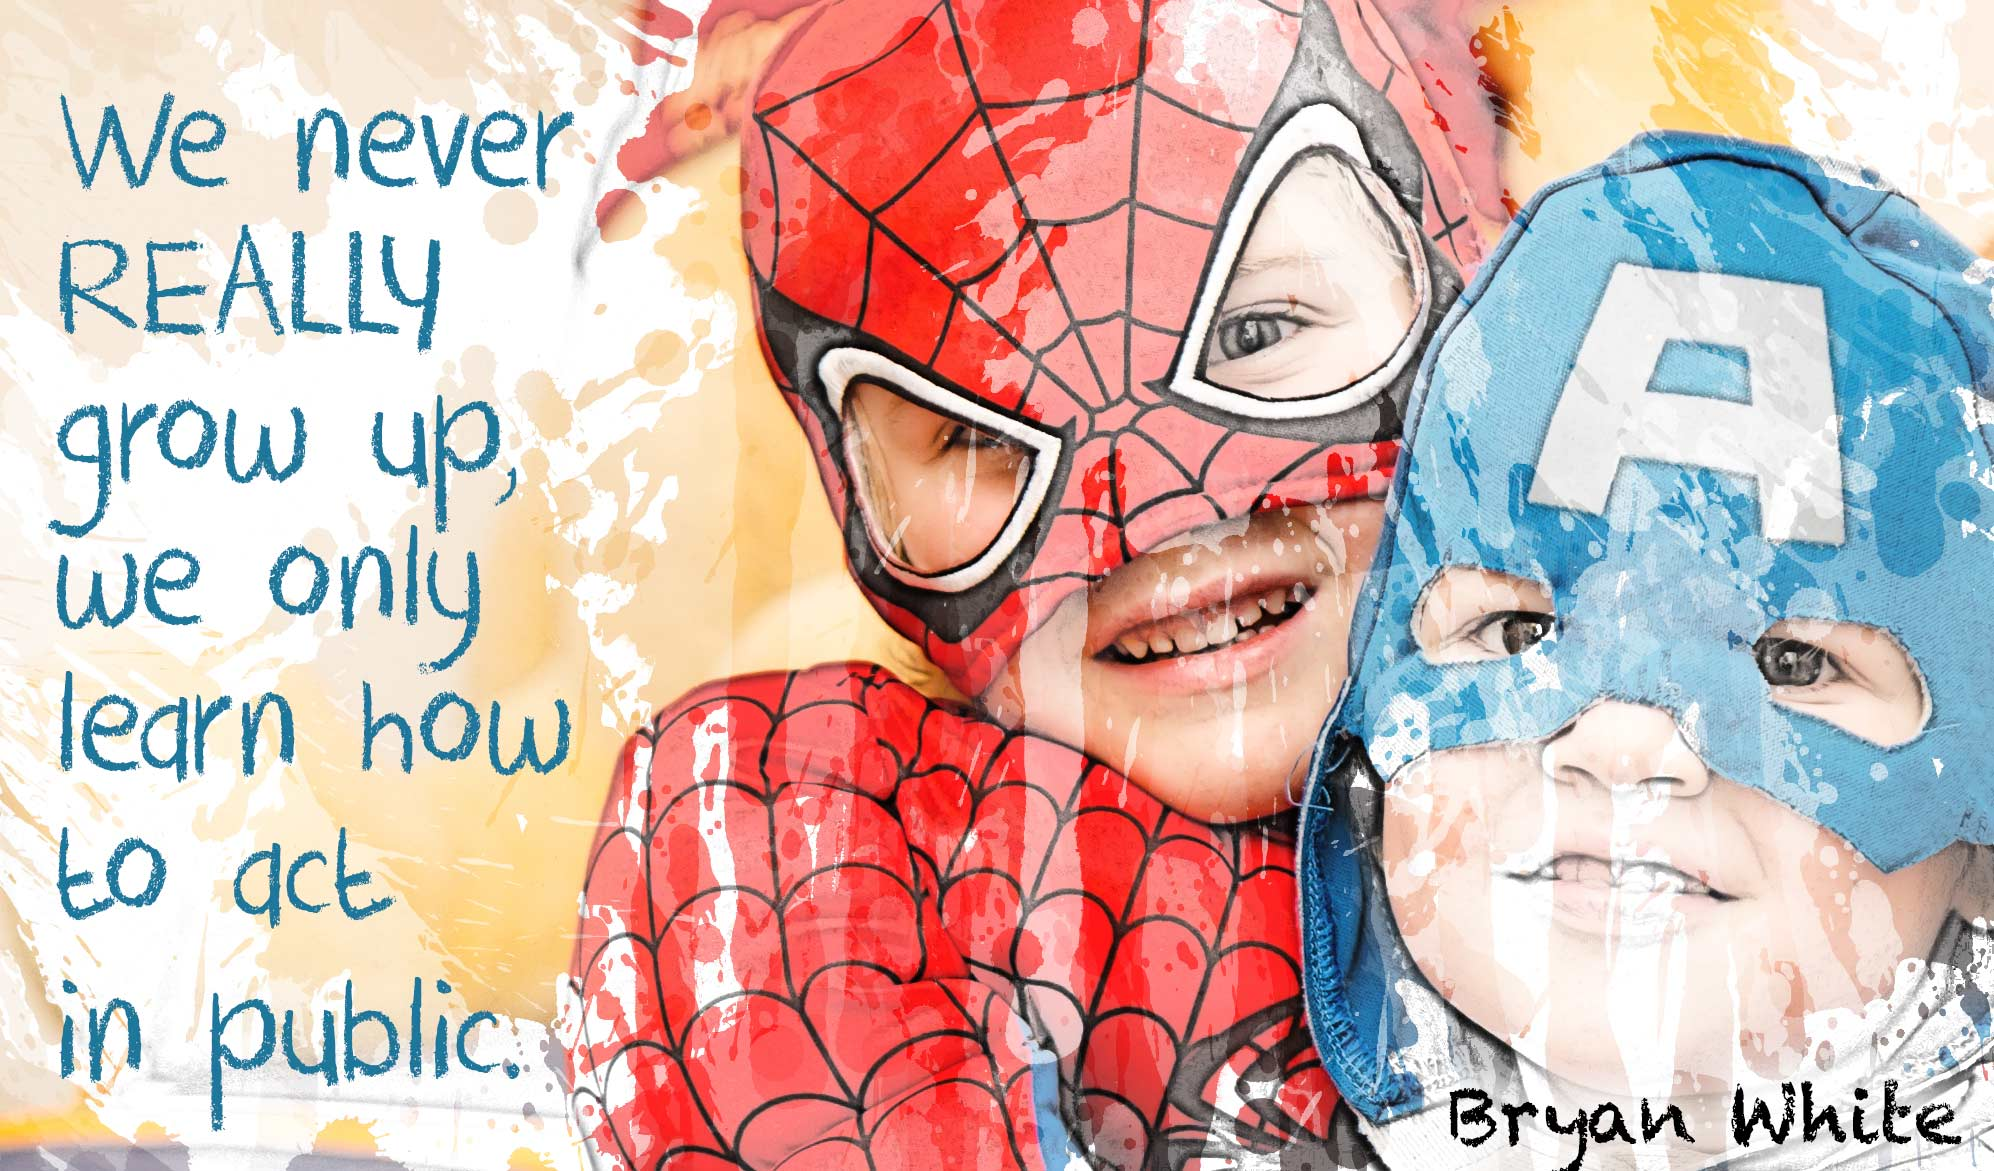 daily inspirational quote image: 2 kids dressed as super heros, depicted as illustrations